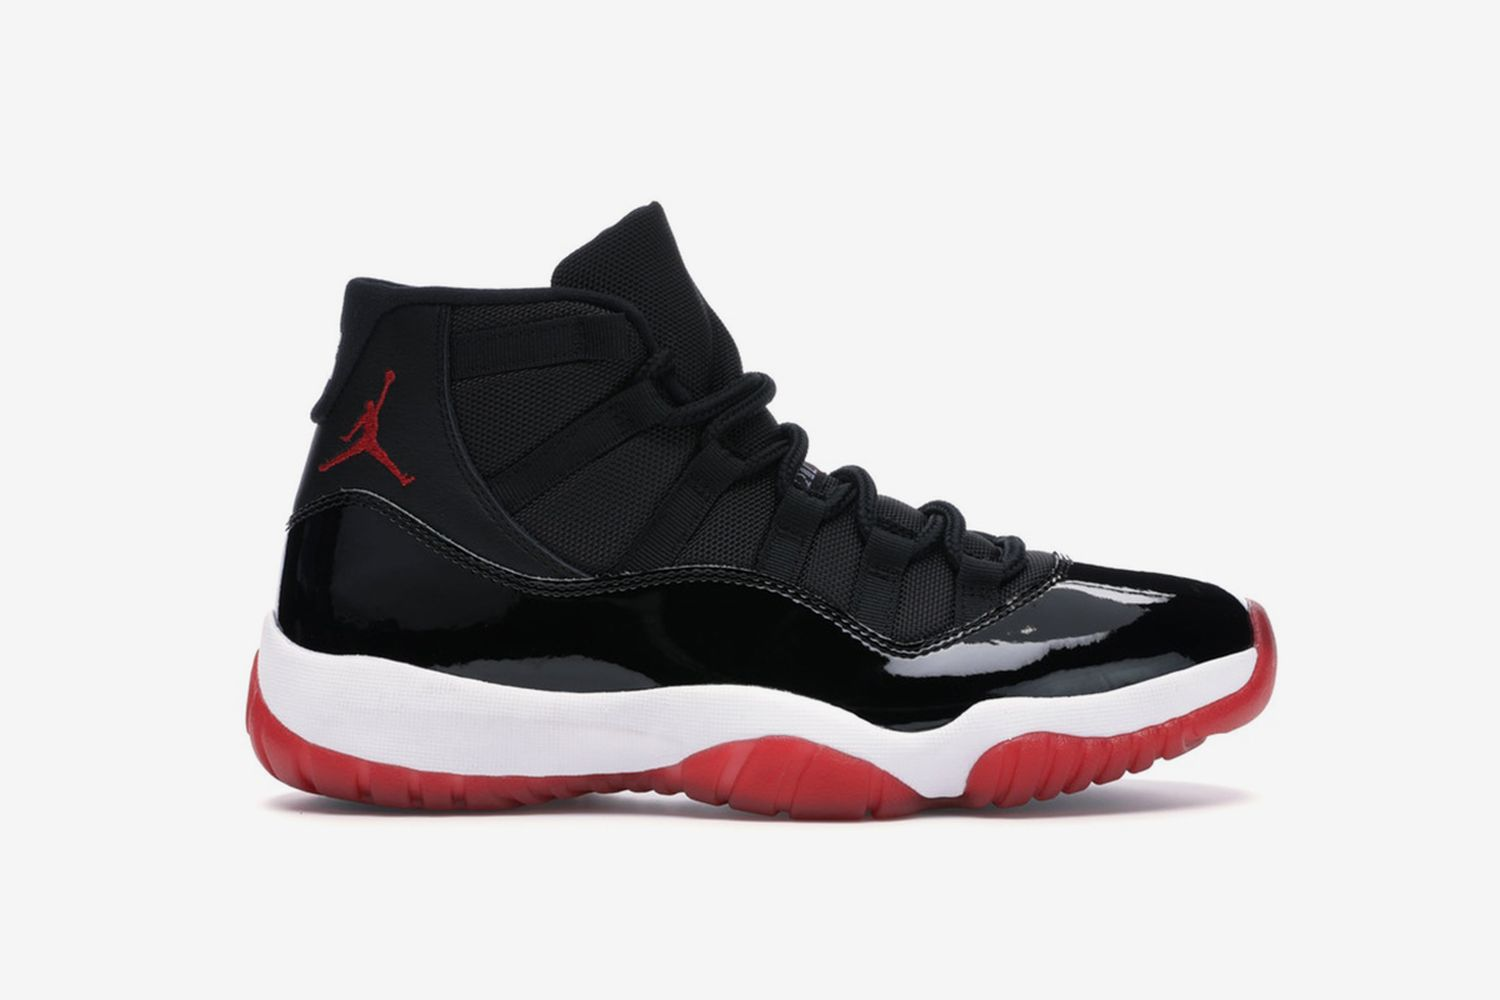 Air Jordan 11 Retro Playoffs Bred (2019)